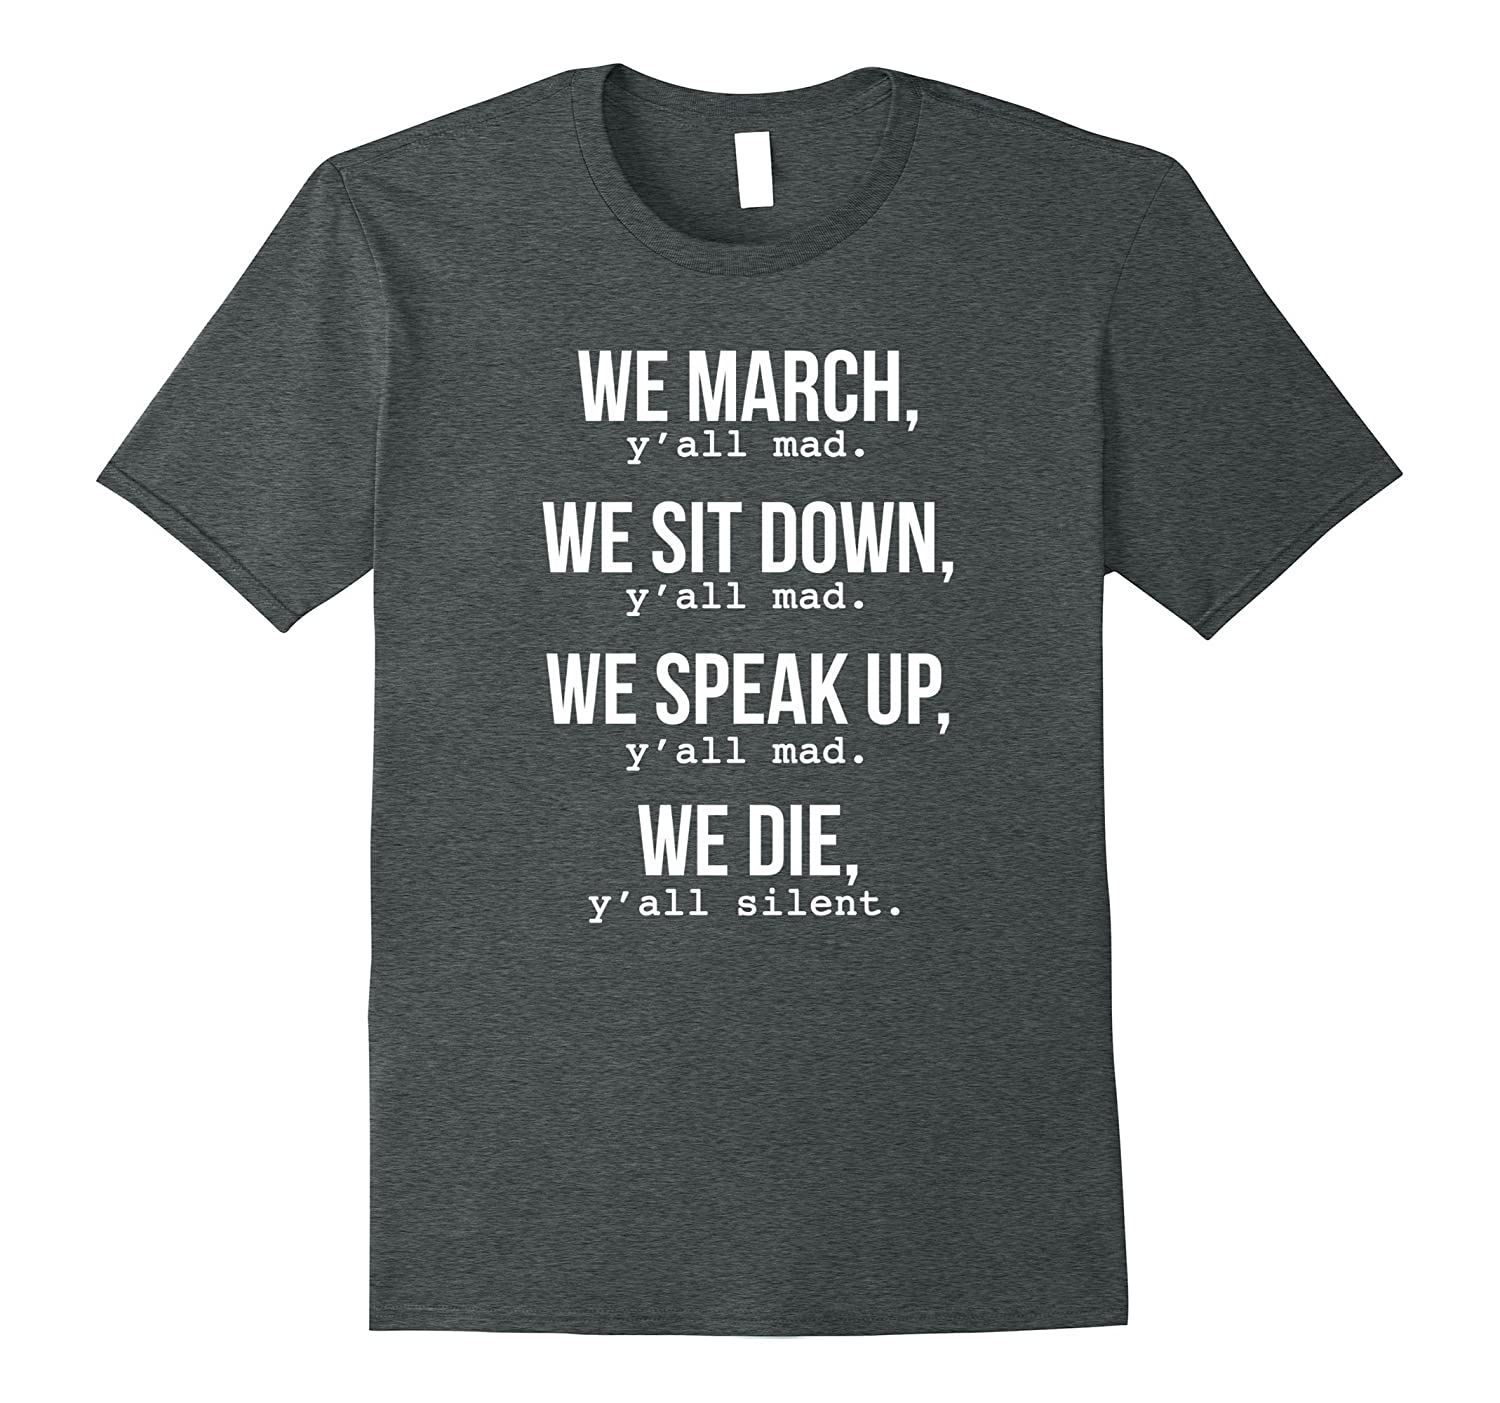 We March, Y'all Mad T-Shirt for Civil Rights-FL